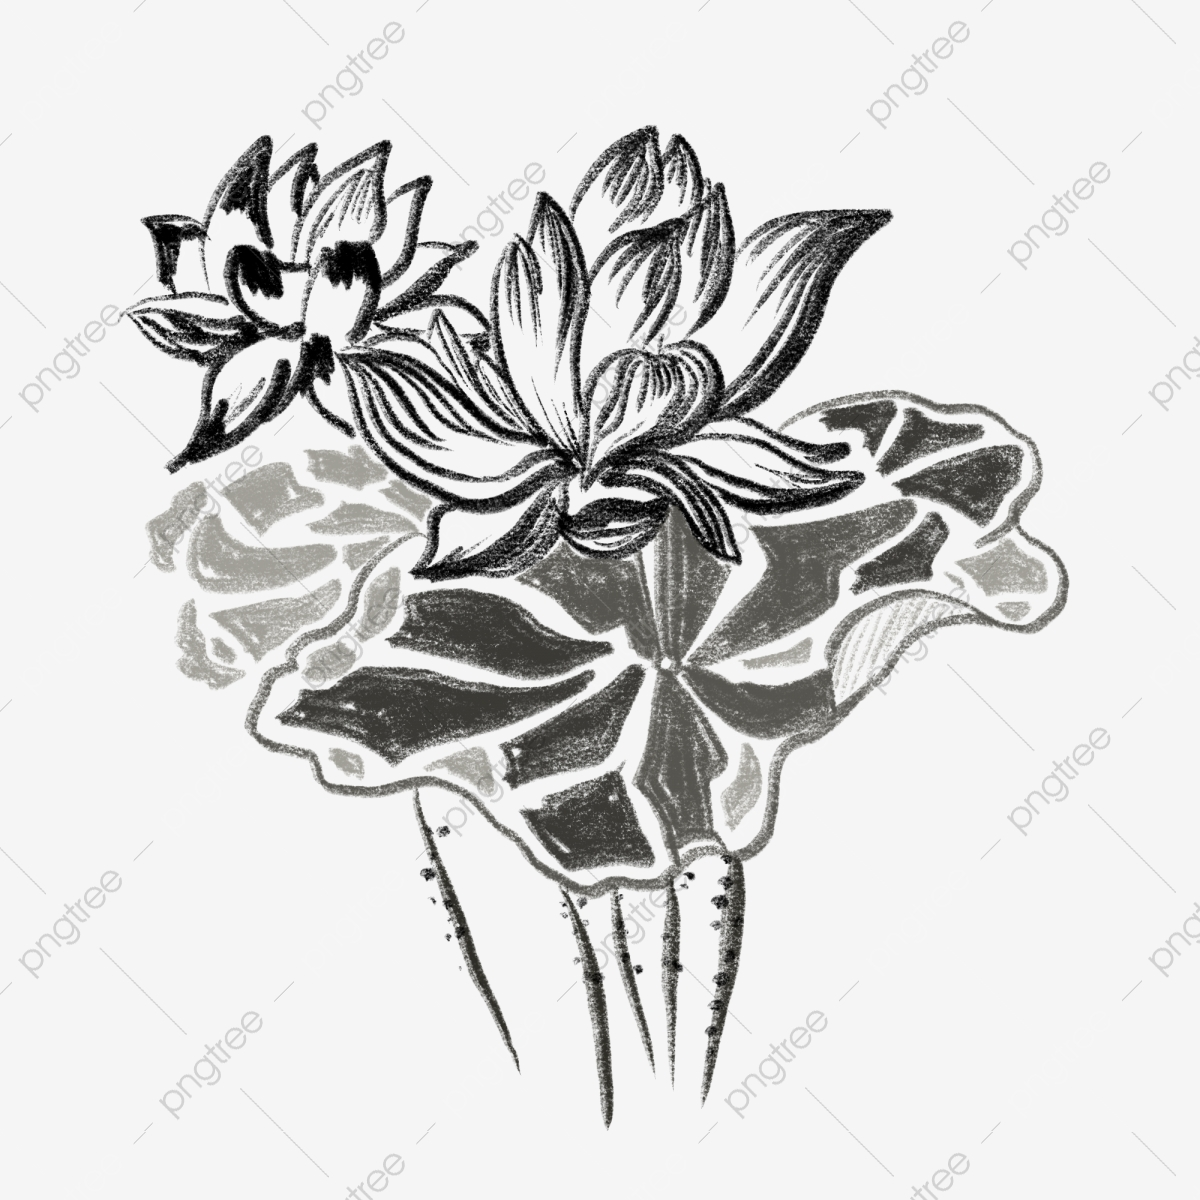 Freehand Ink Lotus Leaf Free Illustration Freehand Ink Leaf Clipart Lotus Clipart Png Transparent Clipart Image And Psd File For Free Download